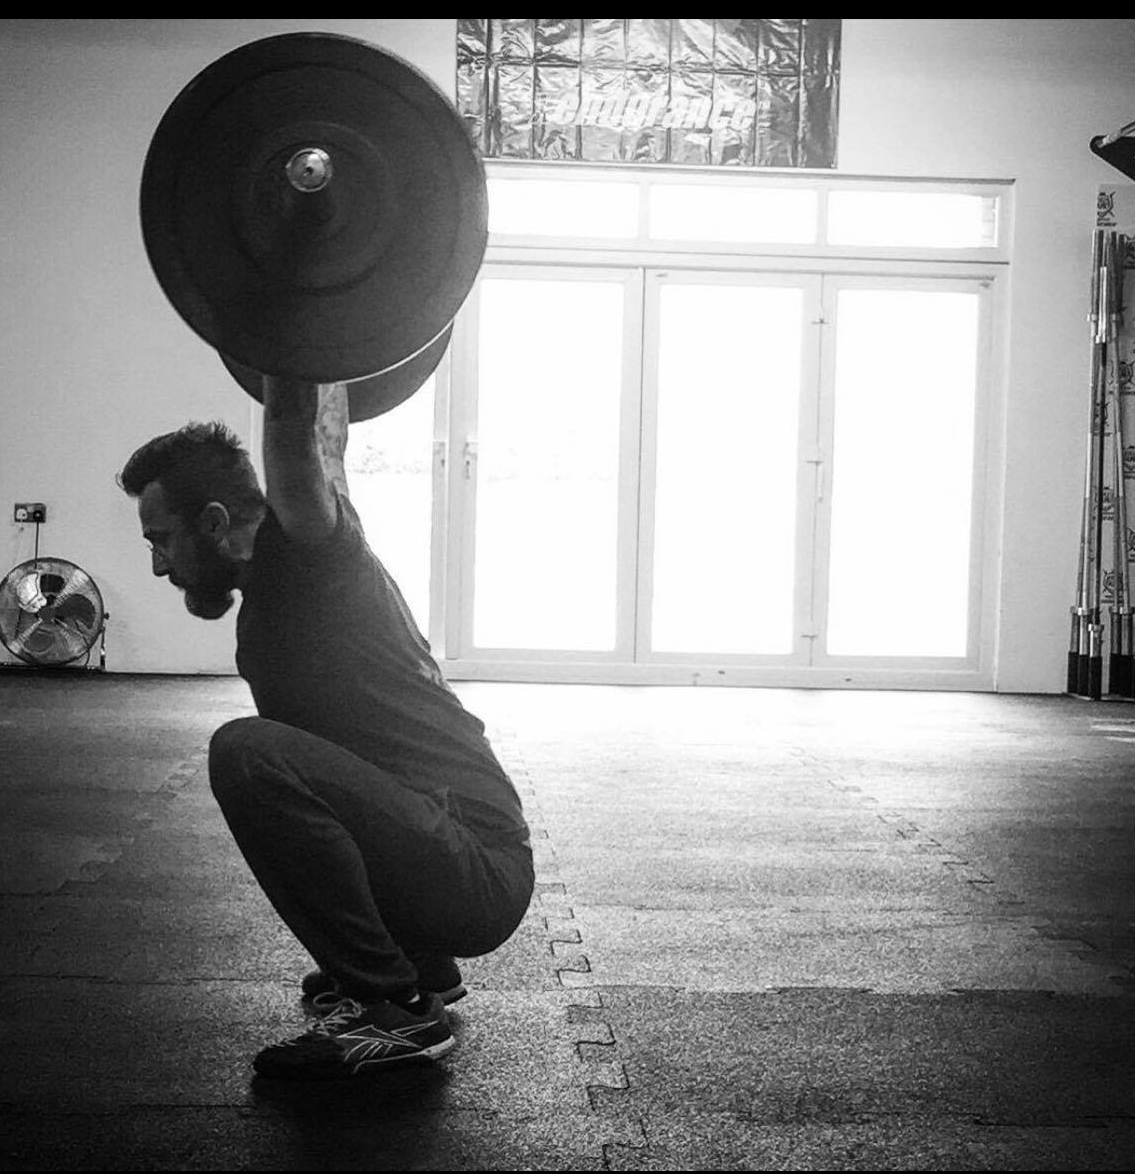 CrossFit is my passionI live and breathe it. - If you ask me why I CrossFit? My answer is simple:I want to be healthy for my kids.I want to be able to walk by myself when I'm 70+